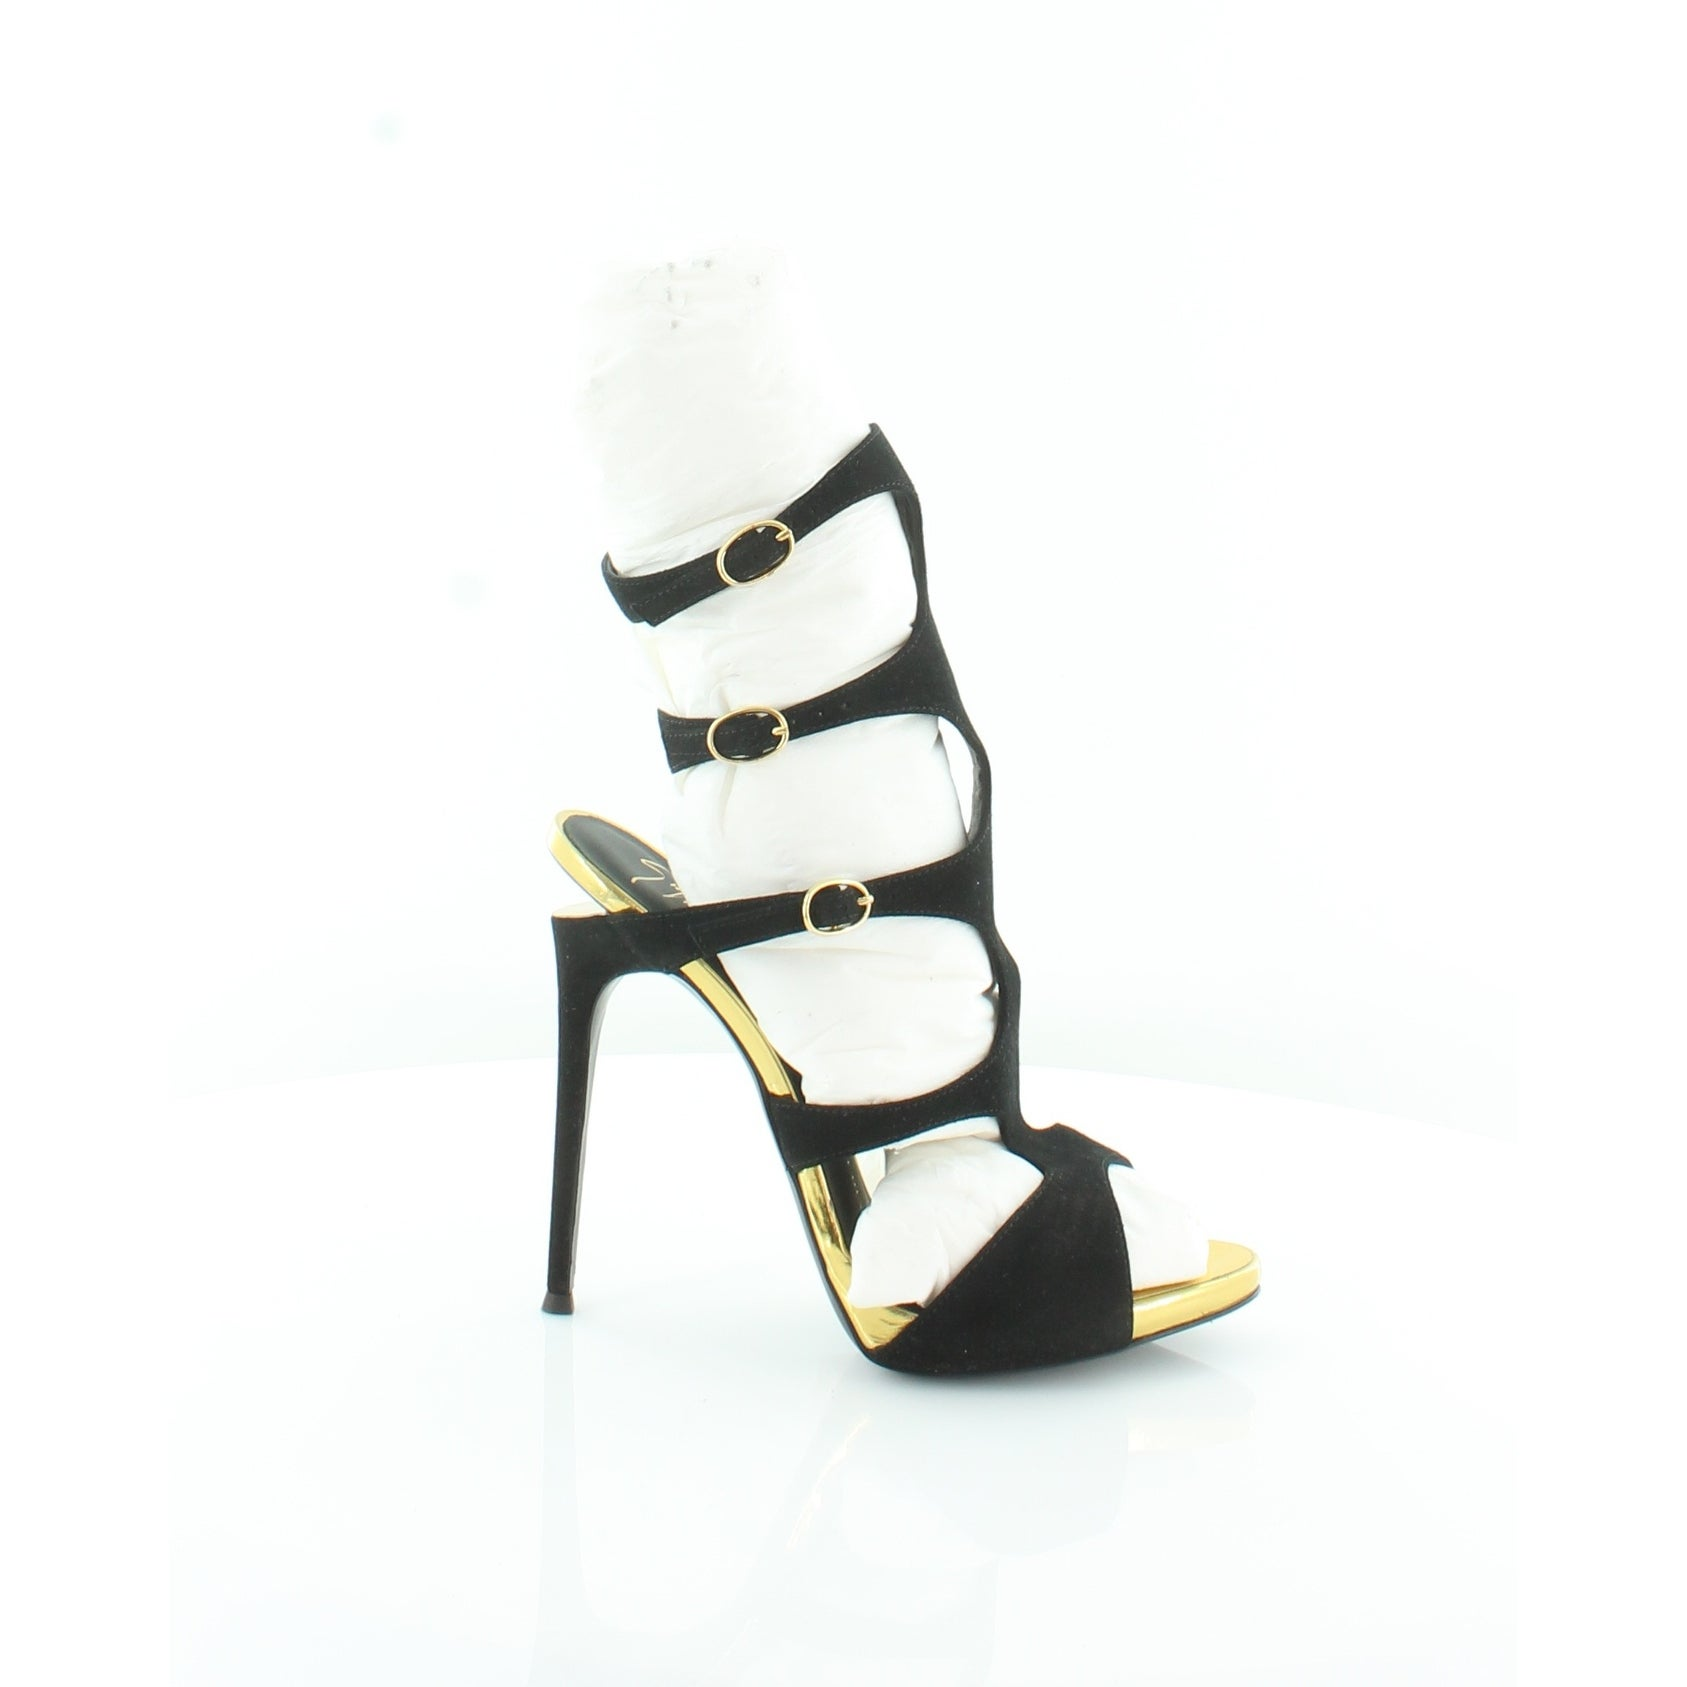 5ef76a61493fb Giuseppe Zanotti Shoes | Shop our Best Clothing & Shoes Deals Online at  Overstock